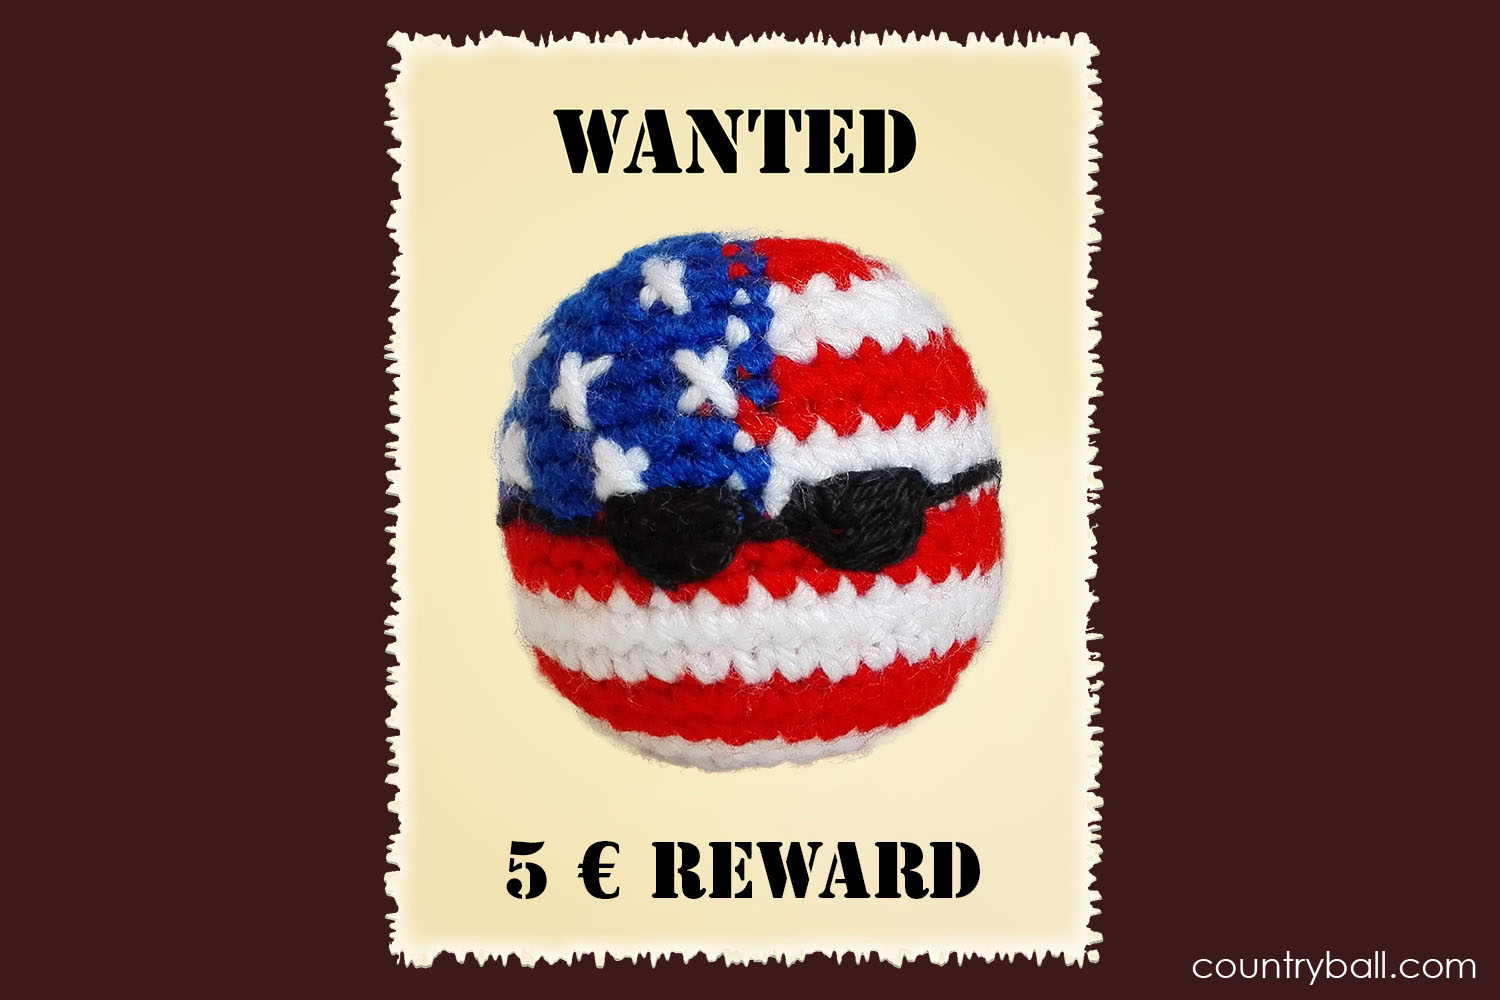 Wanted USABall